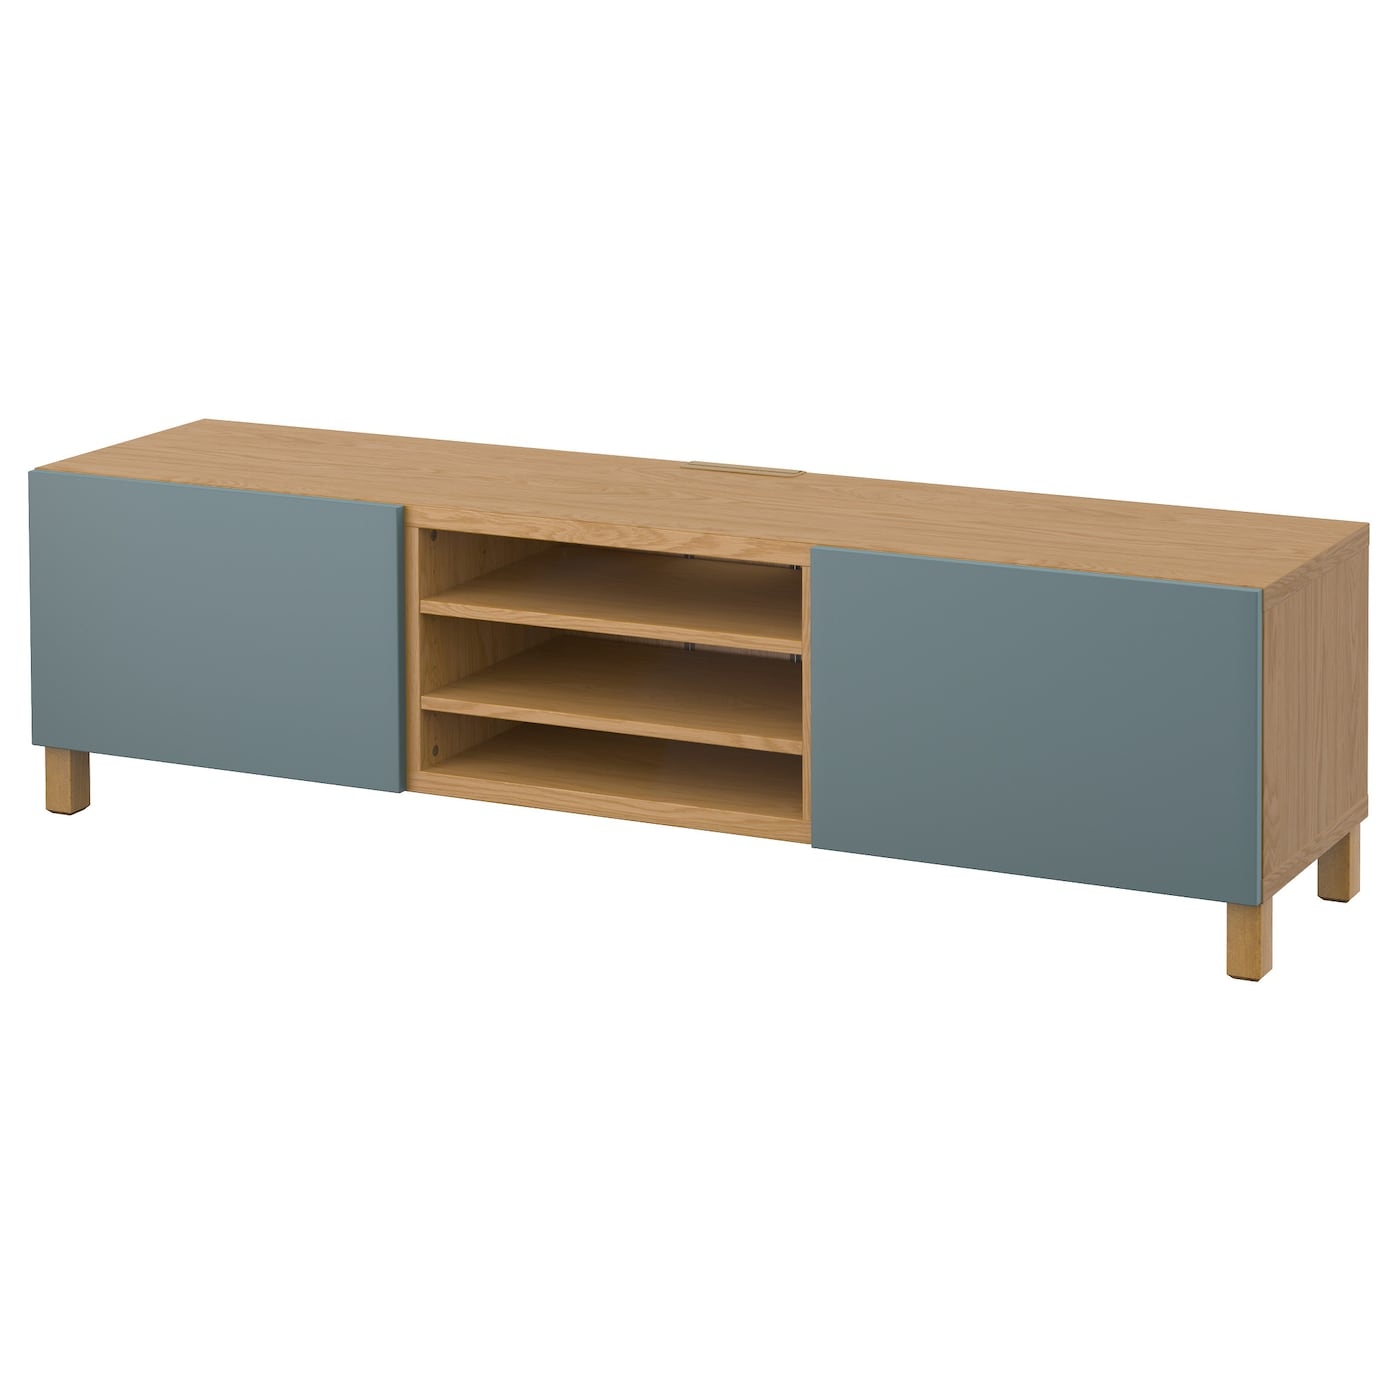 Best Tv Bench With Drawers Oak Effect Valviken Grey Turquoise 180x40x48 Cm Ikea